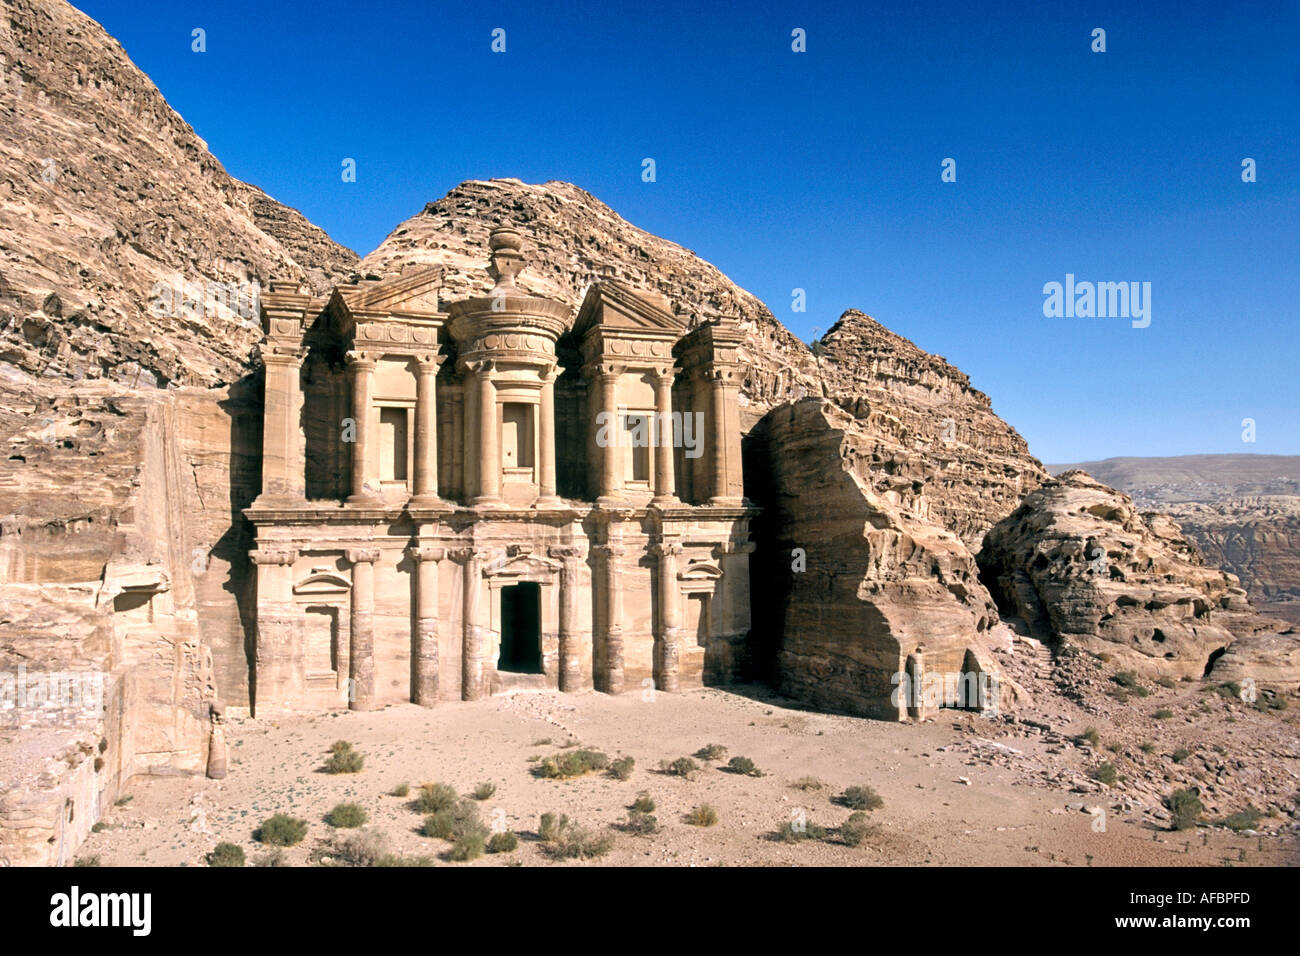 The monastery in the ancient stone city of petra in jordan stock the monastery in the ancient stone city of petra in jordan voltagebd Gallery